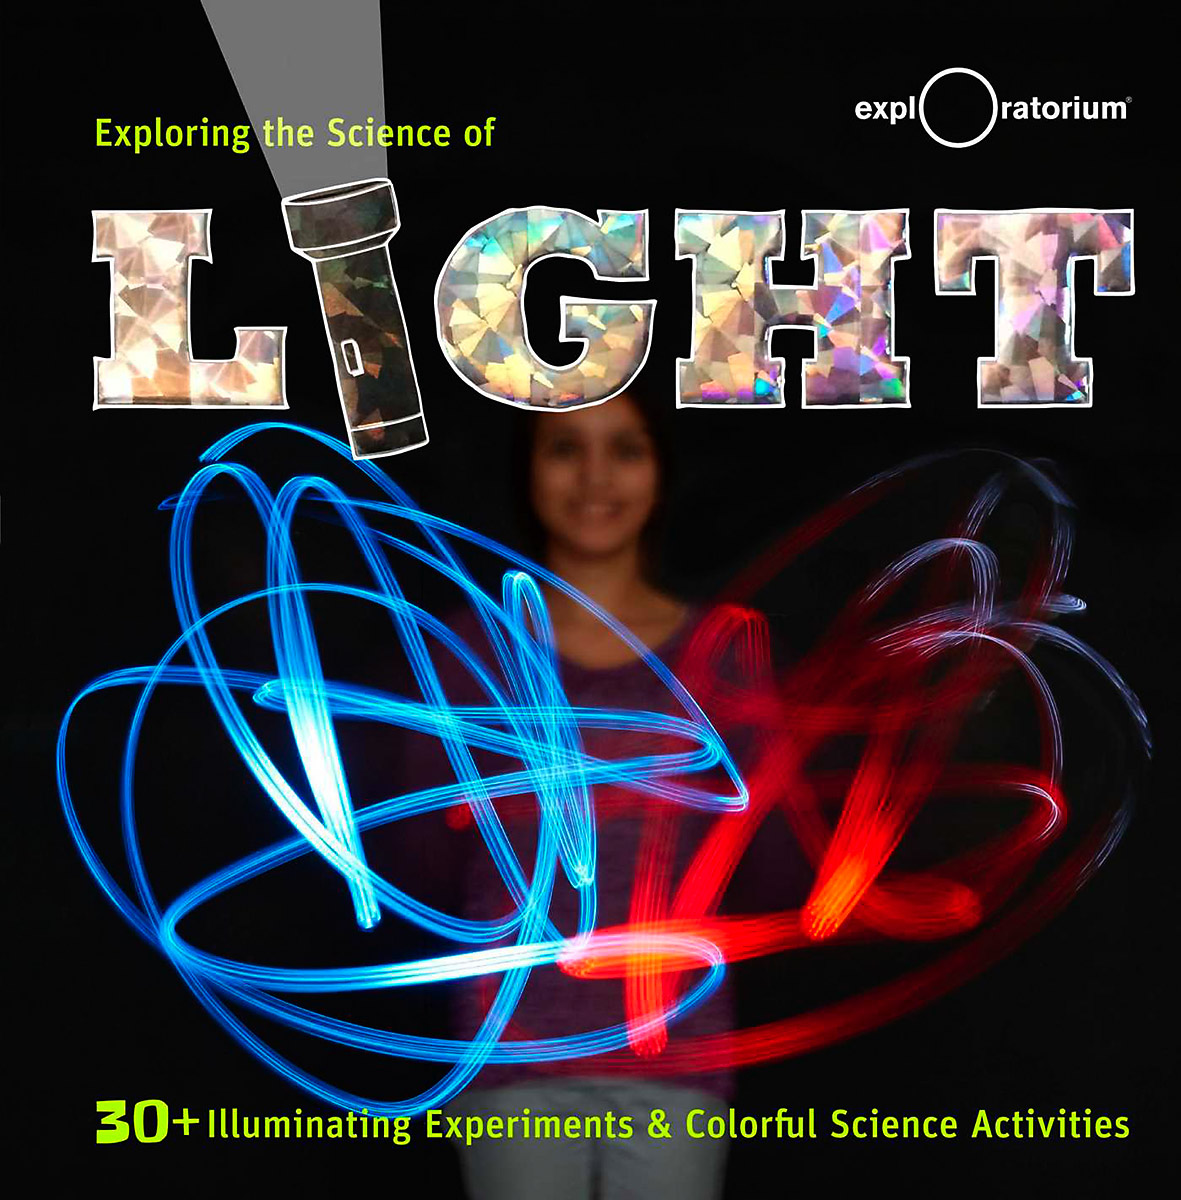 exploratorium-exploring-the-science-of-light